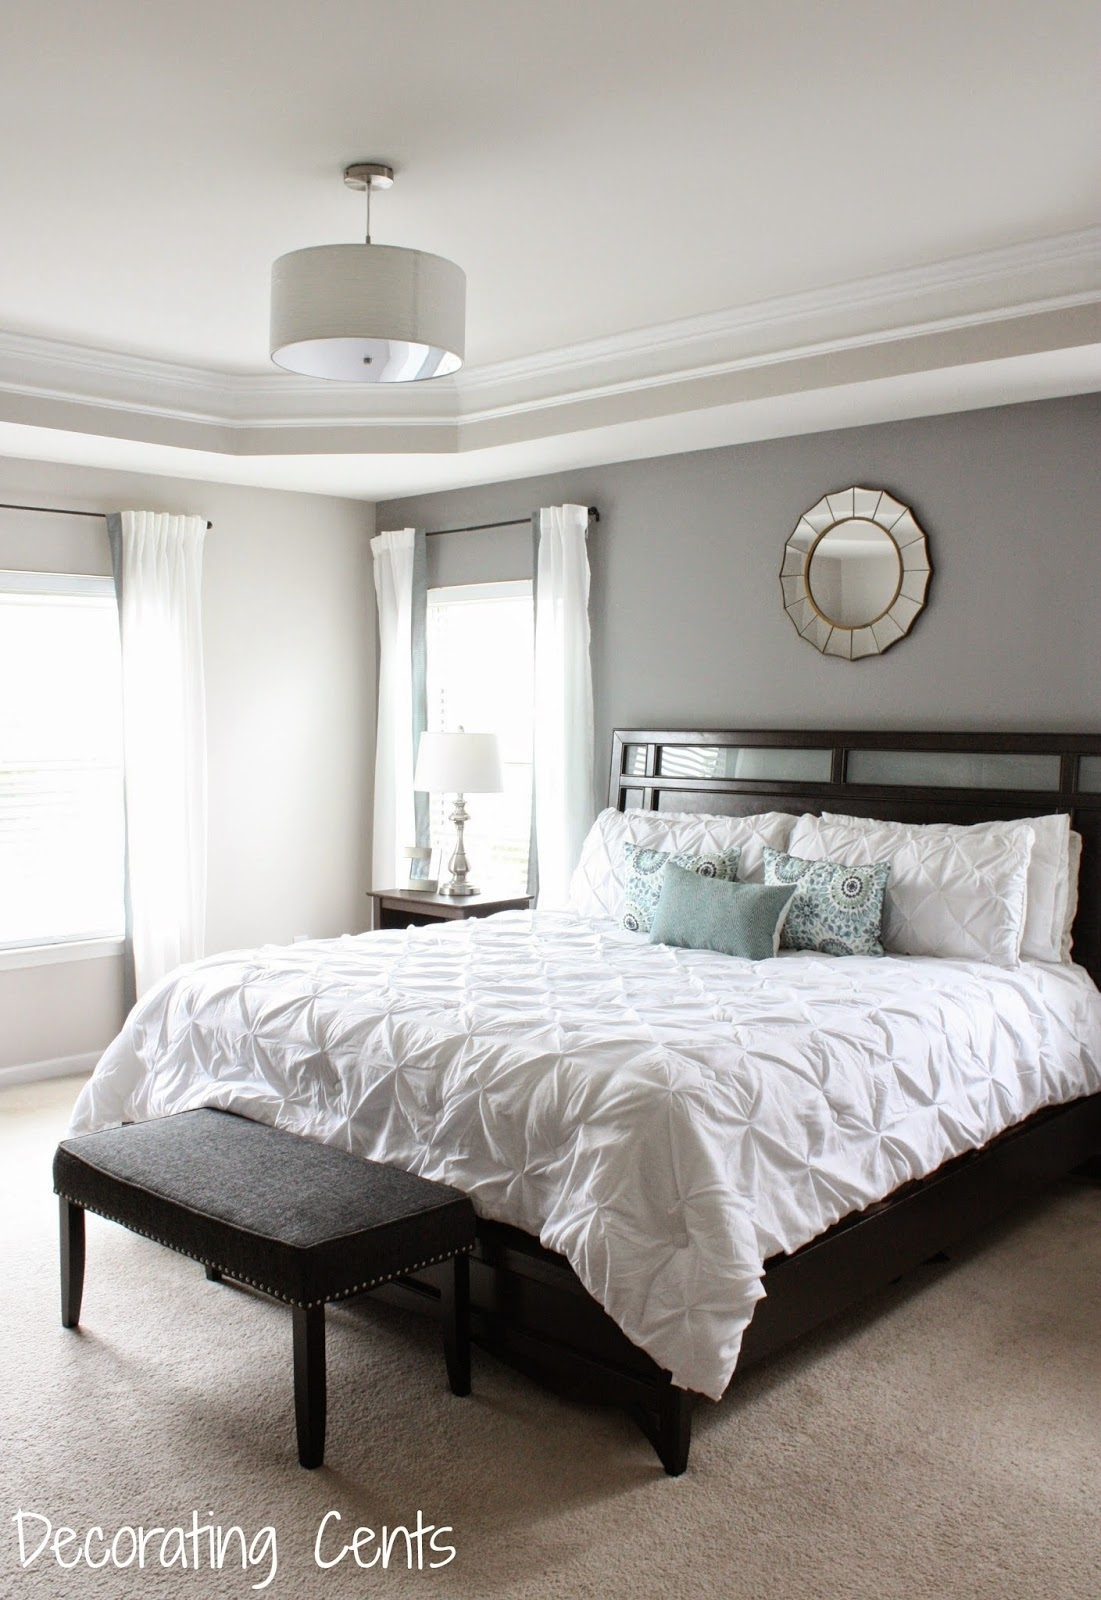 Decorating Cents: Gray Accent Wall Throughout Most Recent Wall Accents Behind Bed (View 7 of 15)